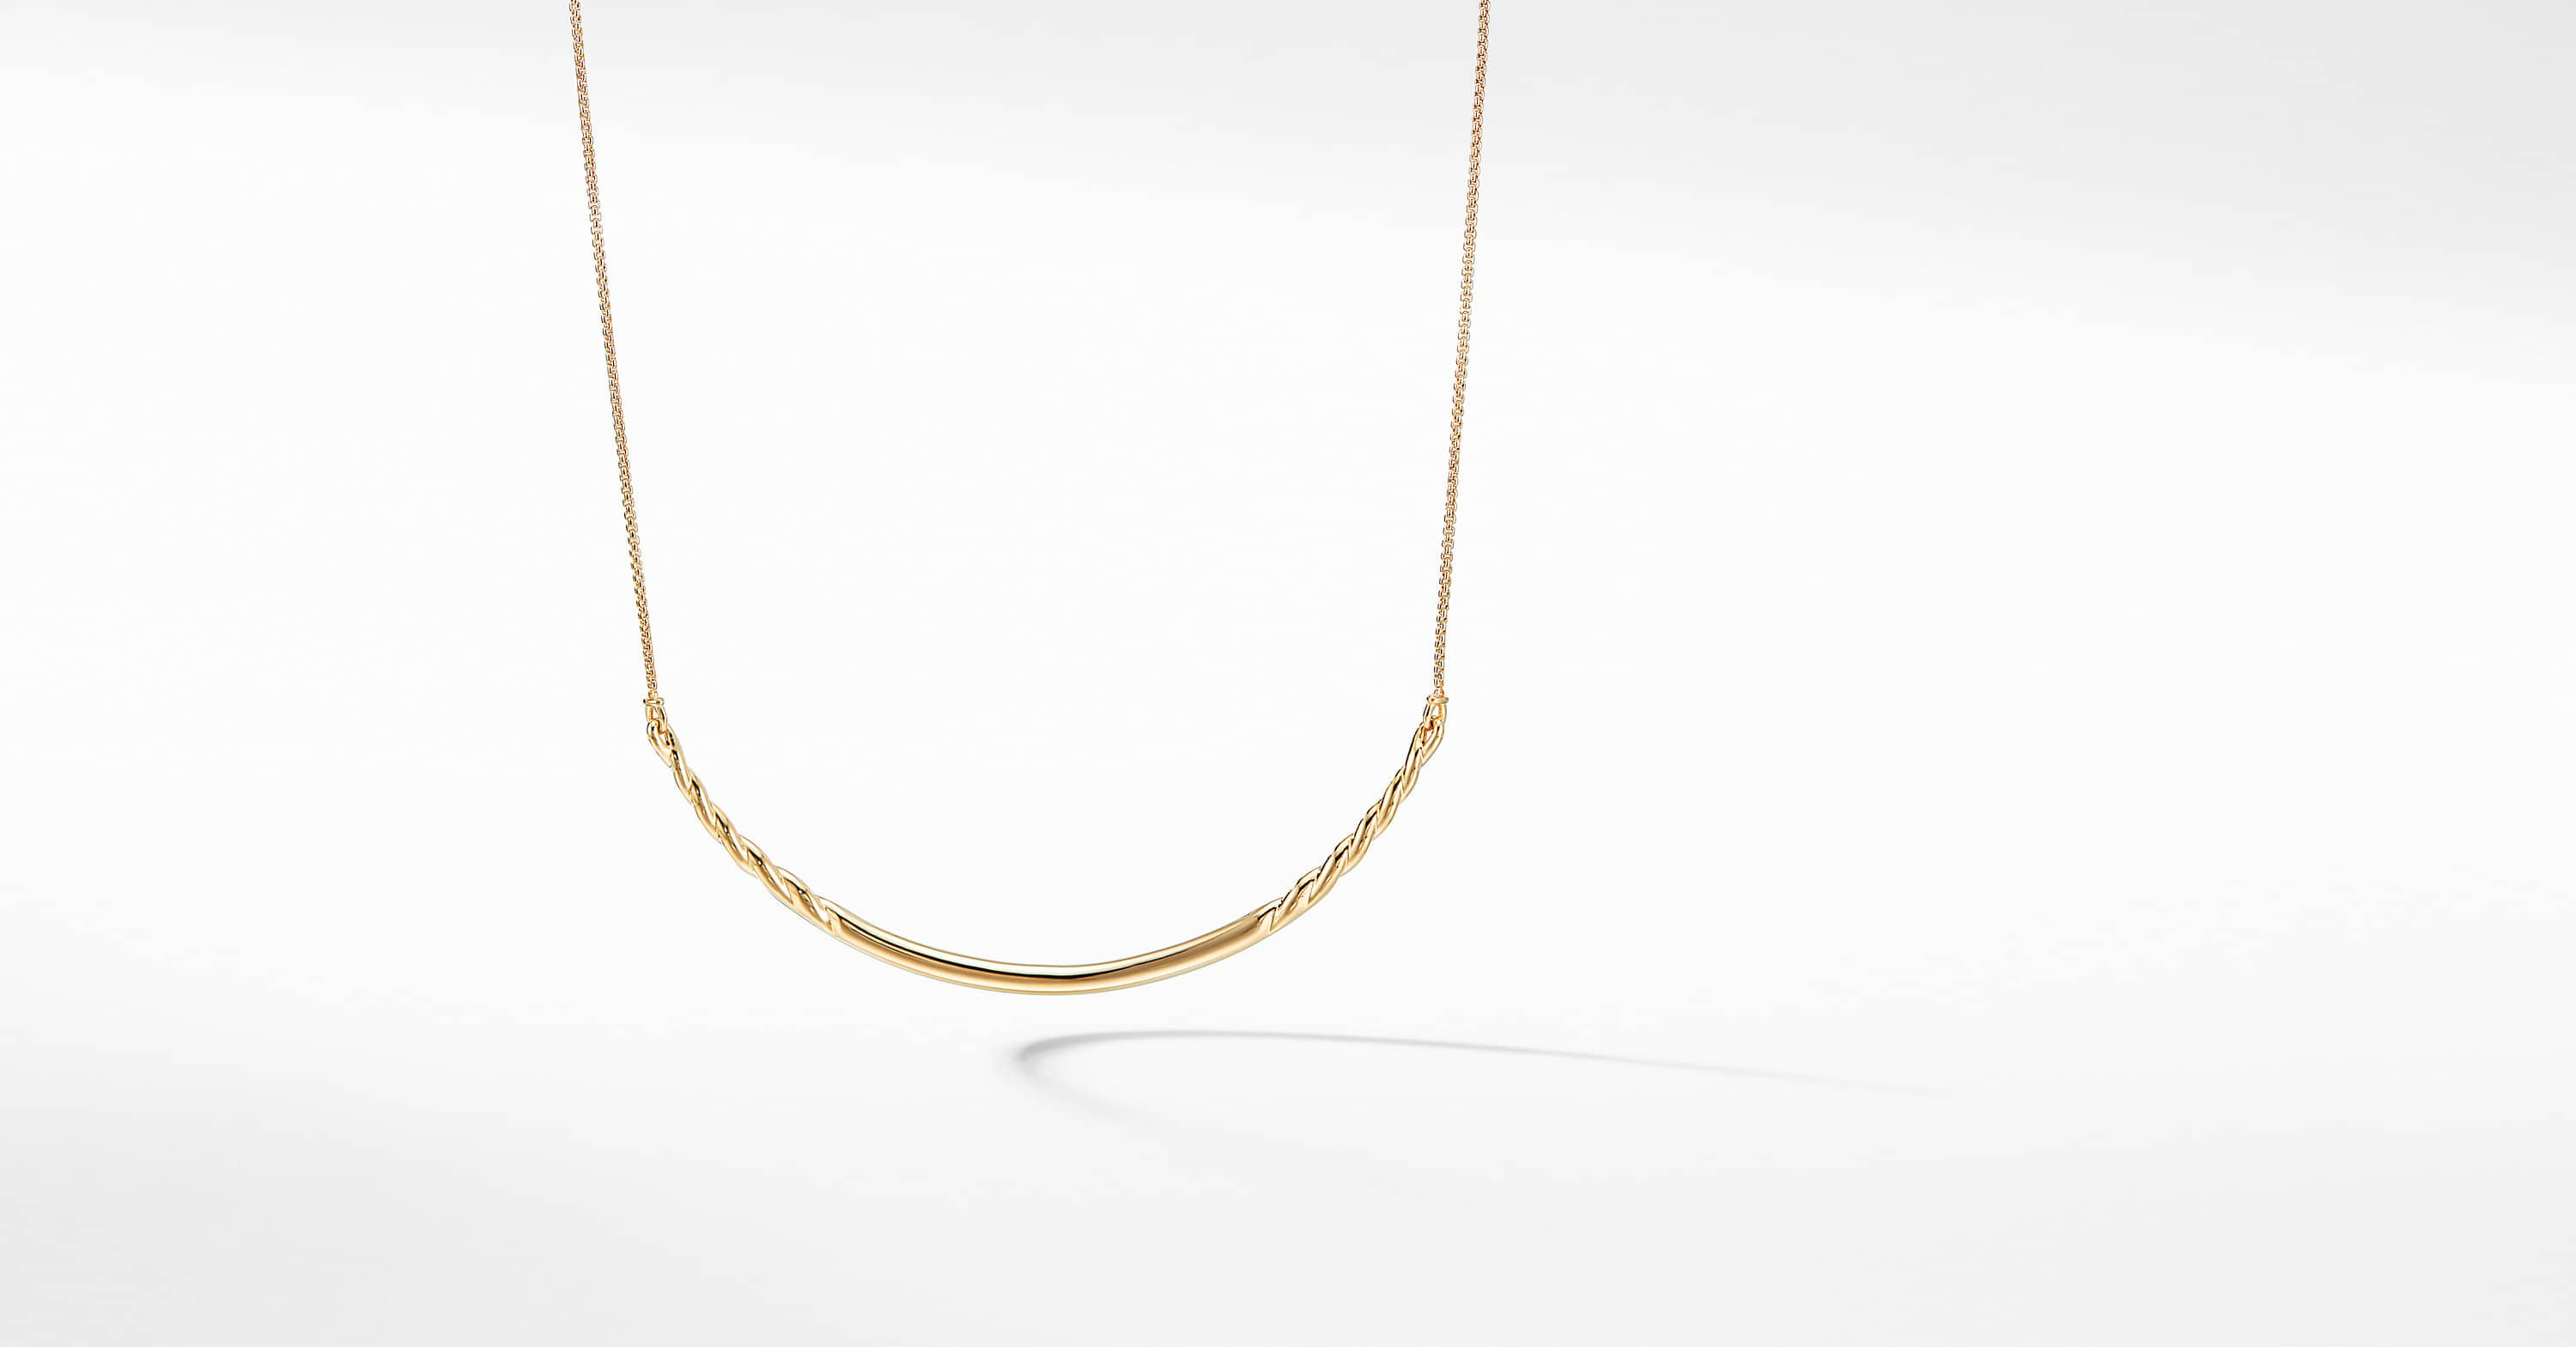 Pure Form Collar Necklace in 18K Gold